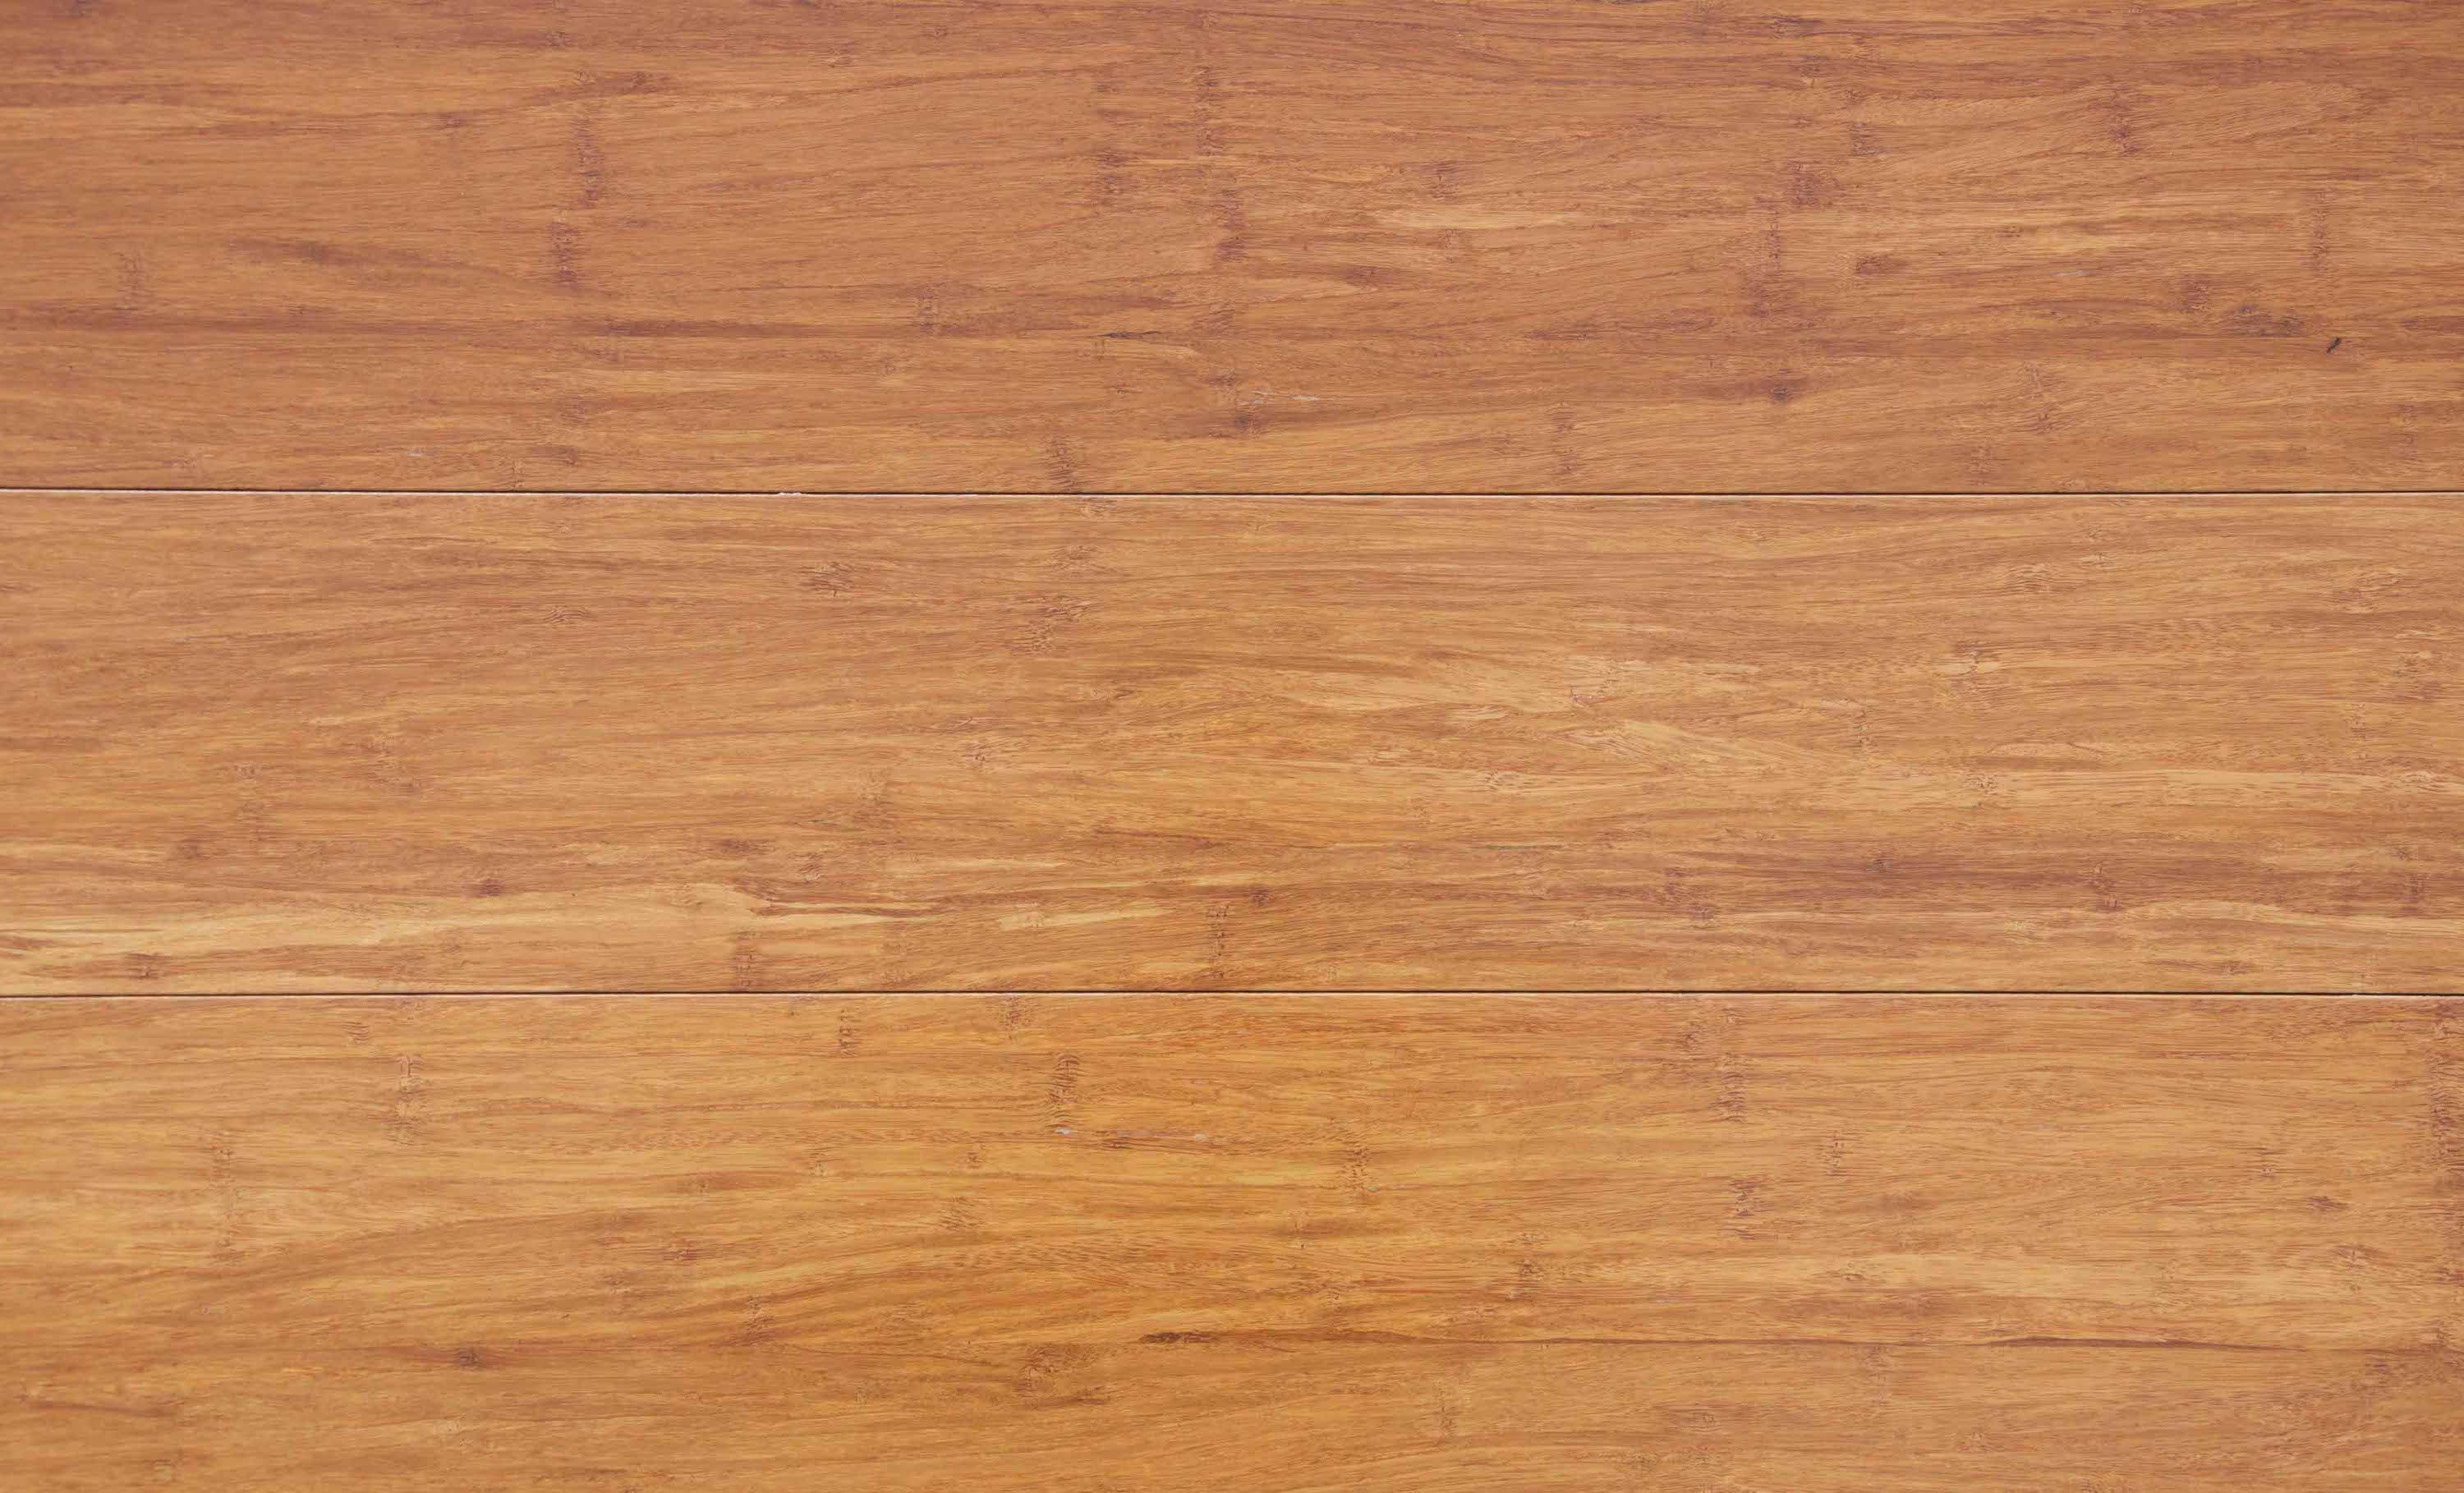 Bamboo Flooring Strand Woven Caramel Click Profile Page Of Oakwood Import Importer And Manufacturer Of Parquet Bambou Salle De Bain En Bambou Carreaux Ciment